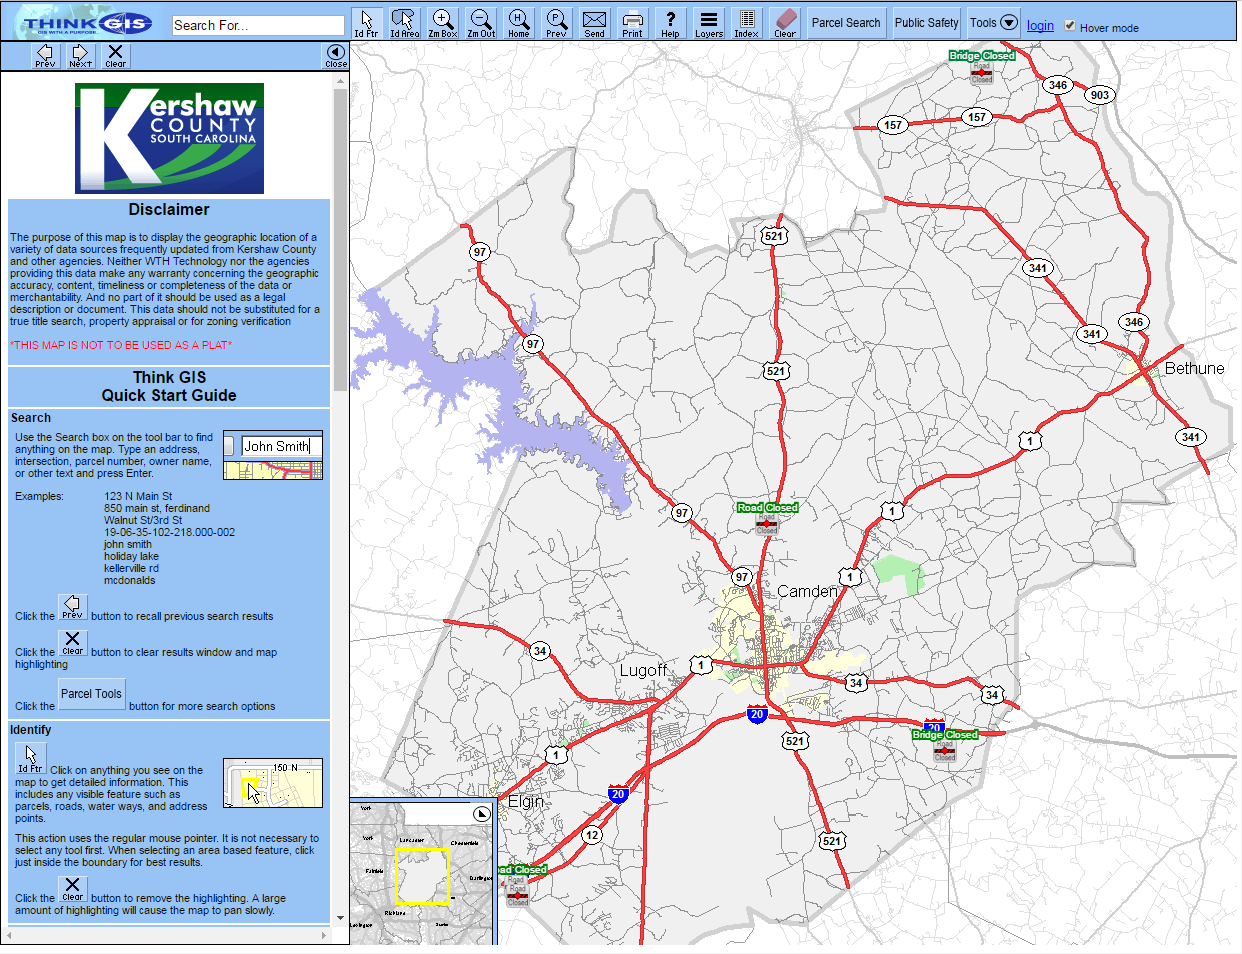 GIS / Mapping | Kershaw County, SC Gis Plat Map on plot map, nevada map, metes and bounds map, district map, survey map, property map, line map, yuba city map, point map,